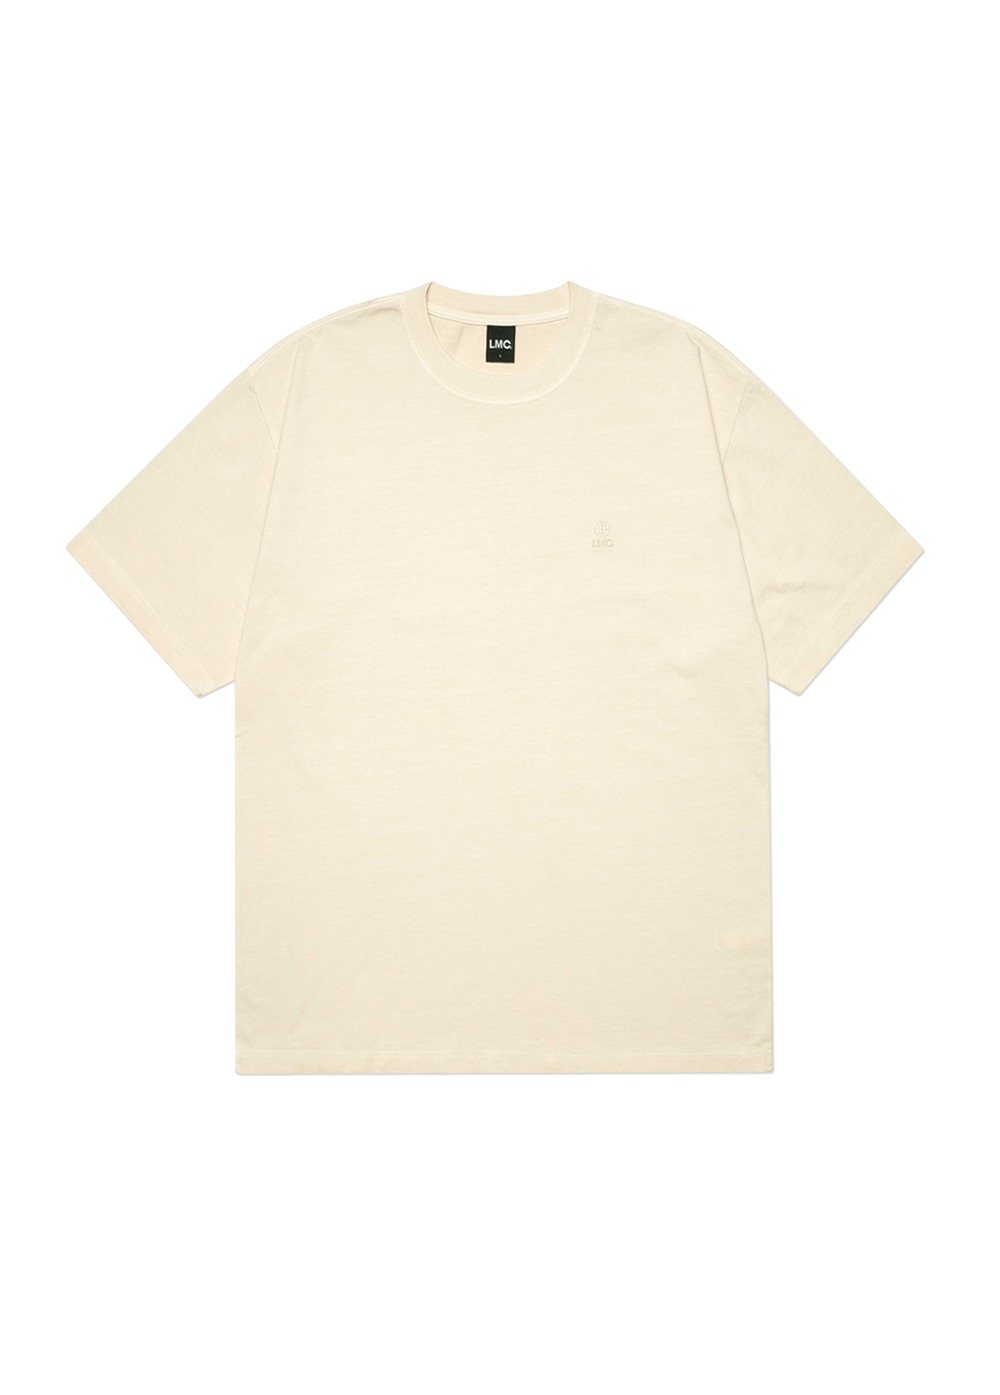 LMC OVERDYED GLOBE TEE cream